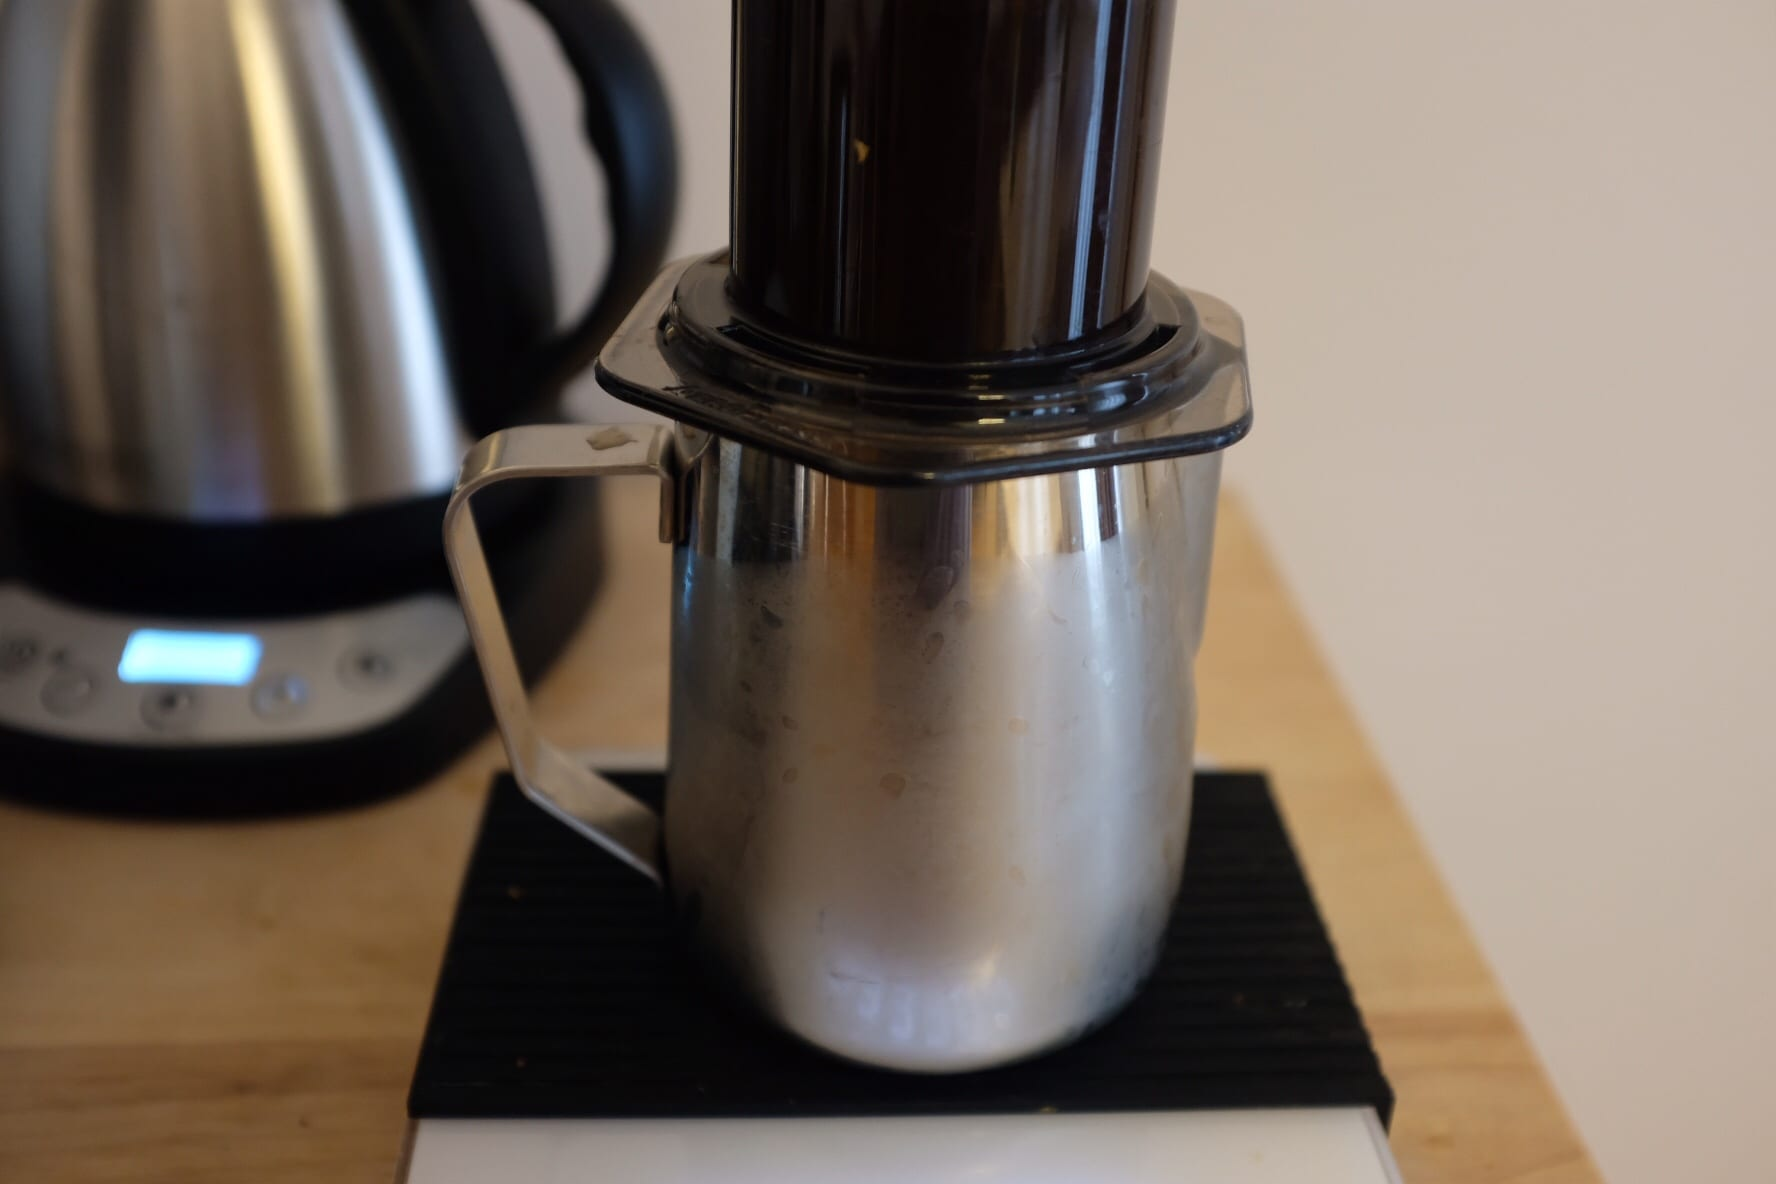 How to make Iced Coffee With an Aeropress